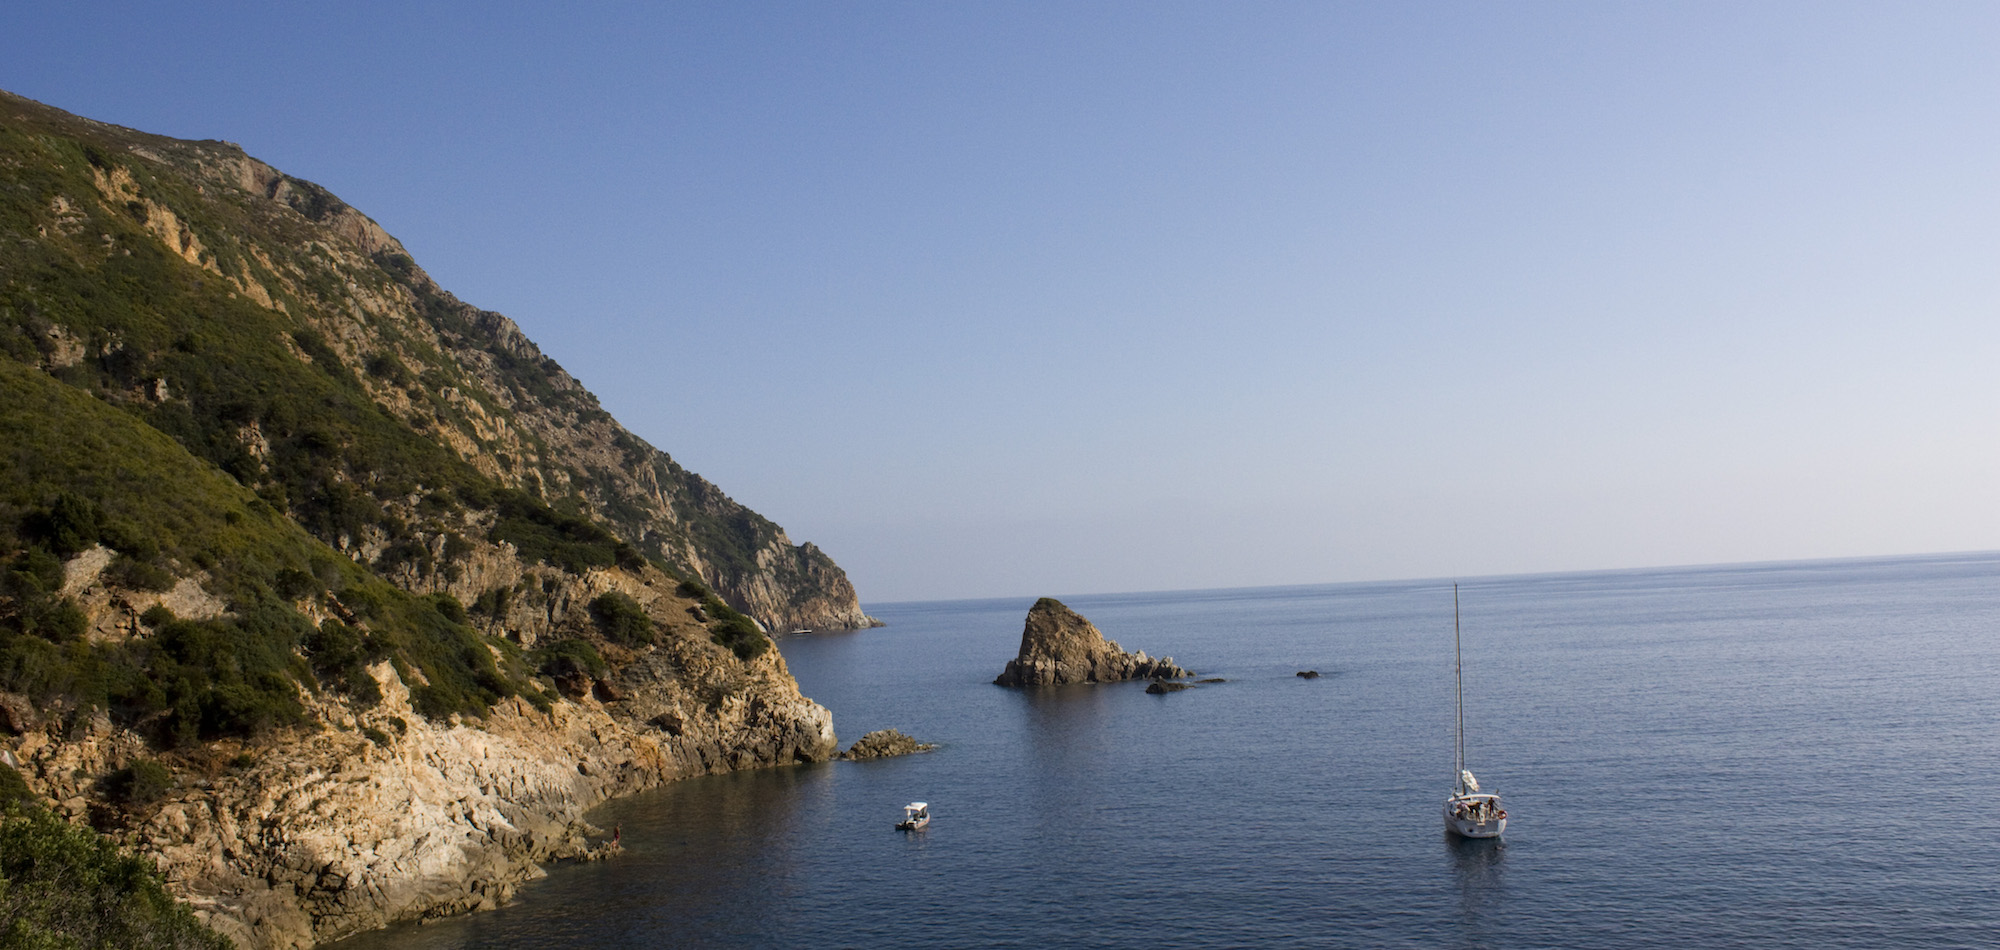 Isola del Giglio - The legend of Saint Mamilian